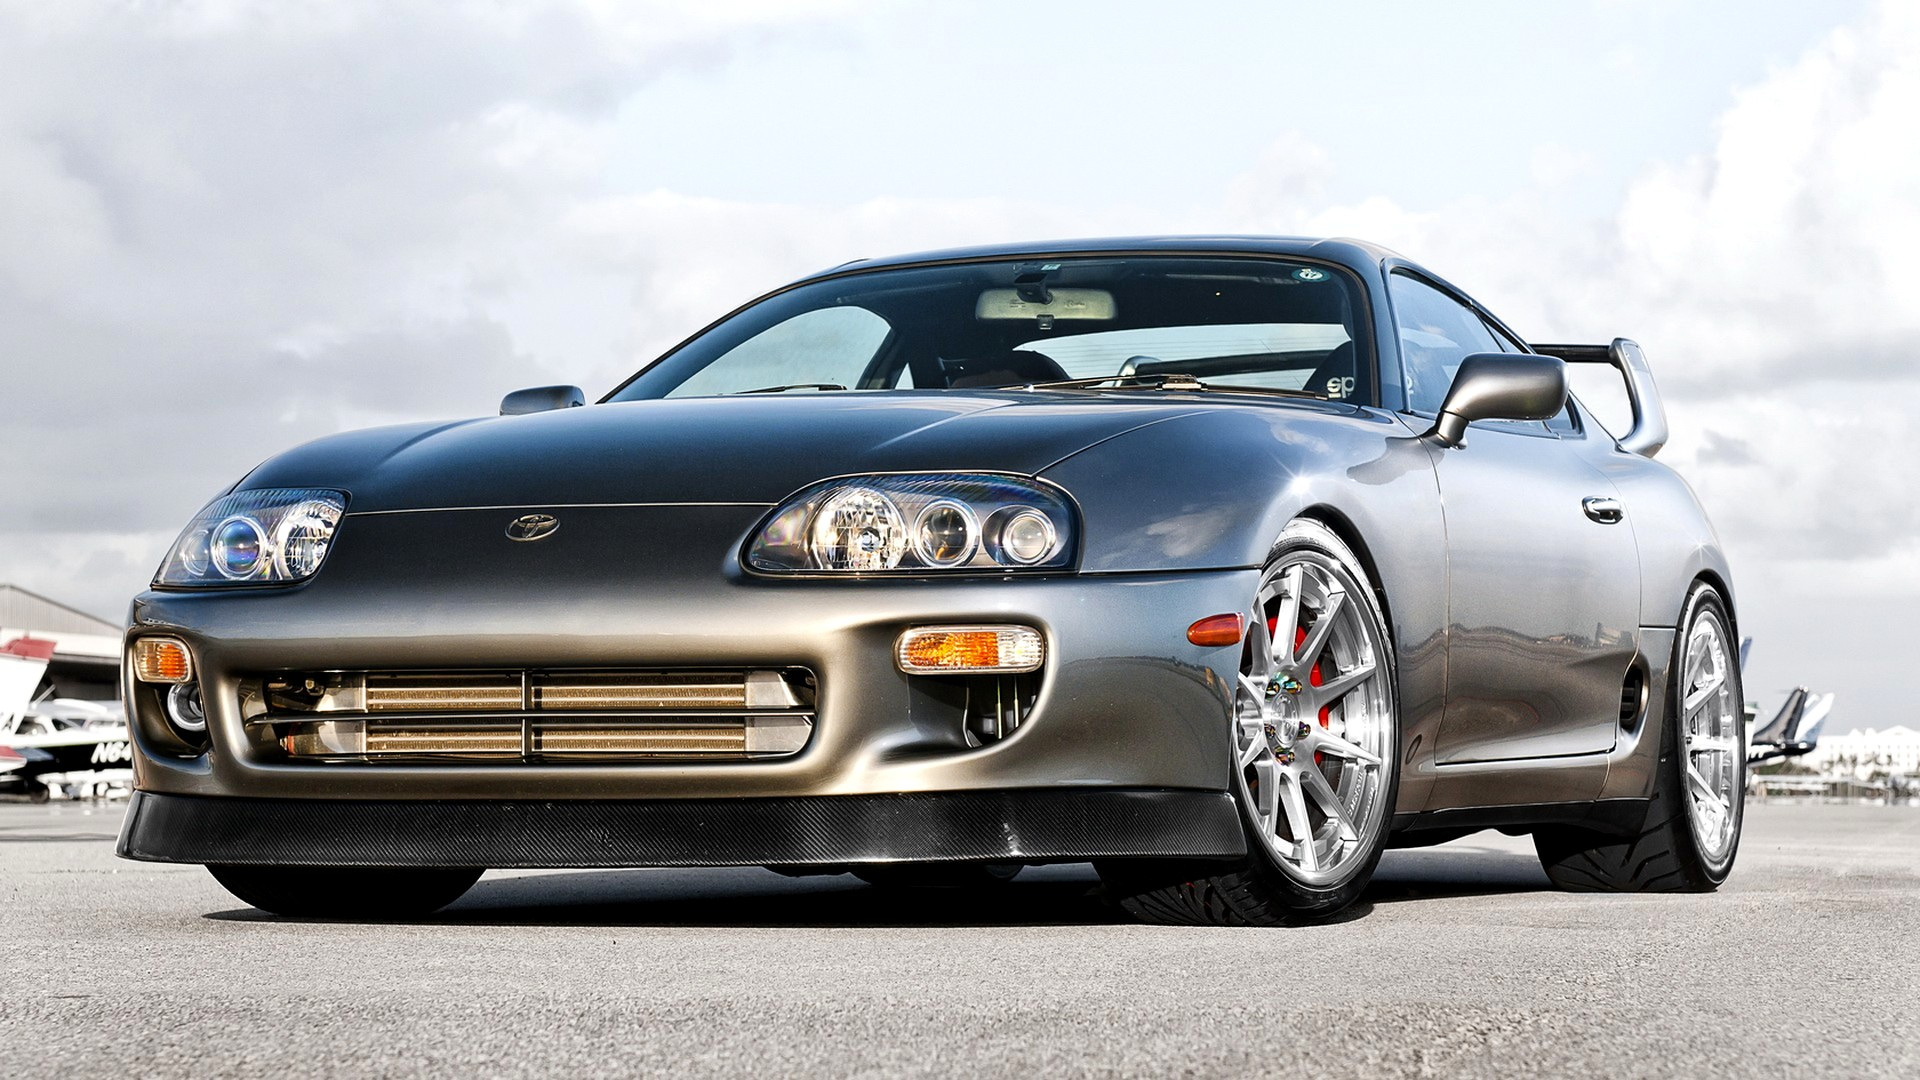 Toyota Supra Wallpapers HD Download 1920x1080